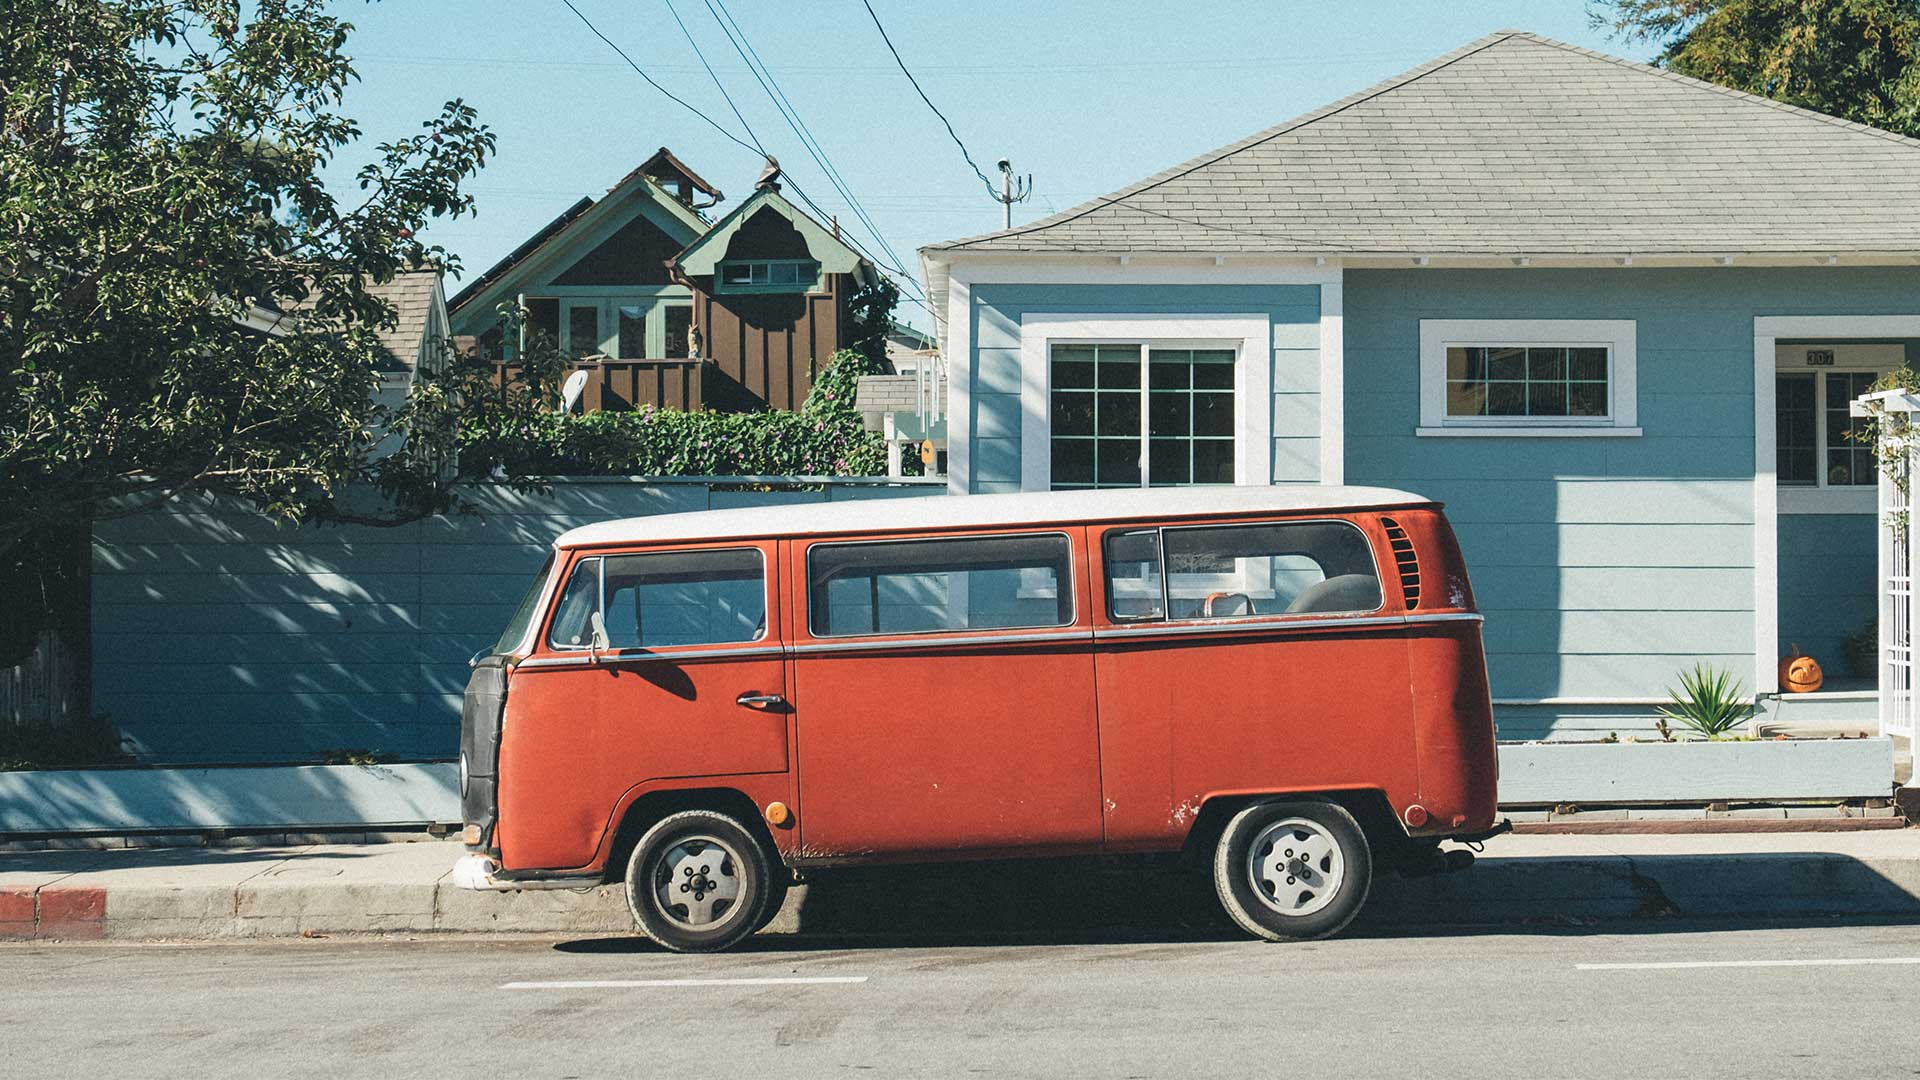 VW campervan orange colorized with Imerge Pro color adjustment effect